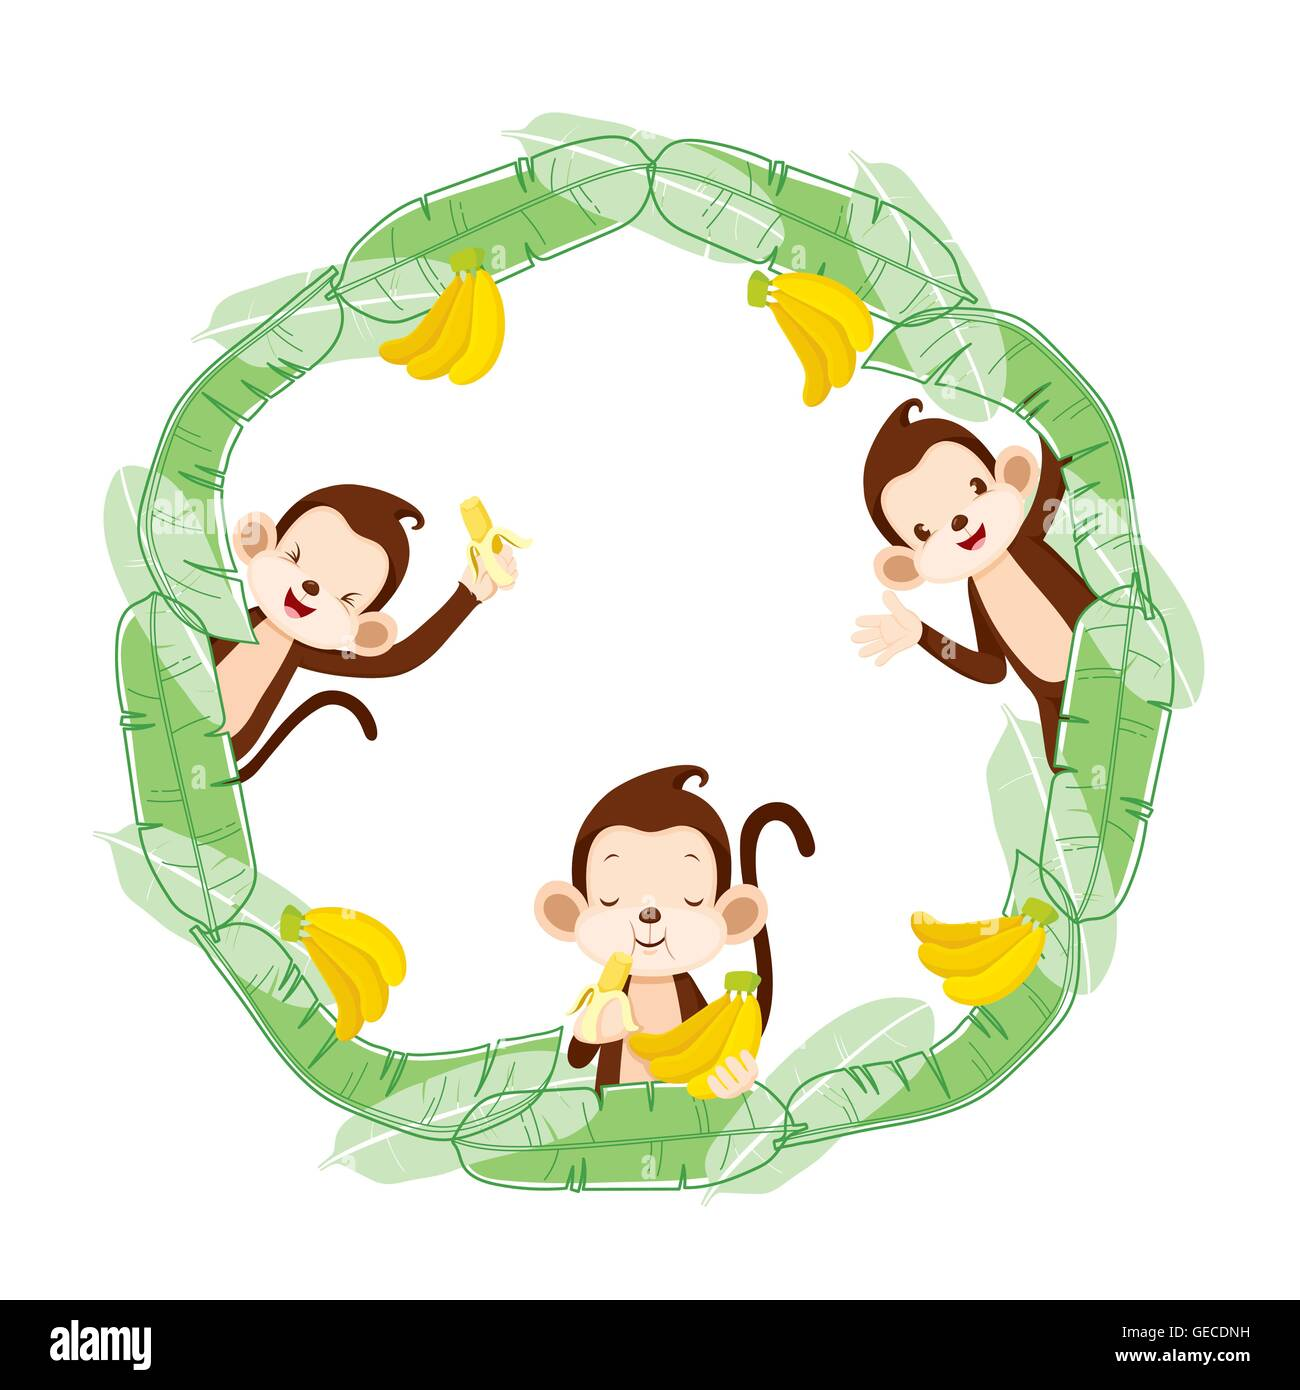 monkey and banana on circle frame animal celebration festive anniversary - Monkey Picture Frame